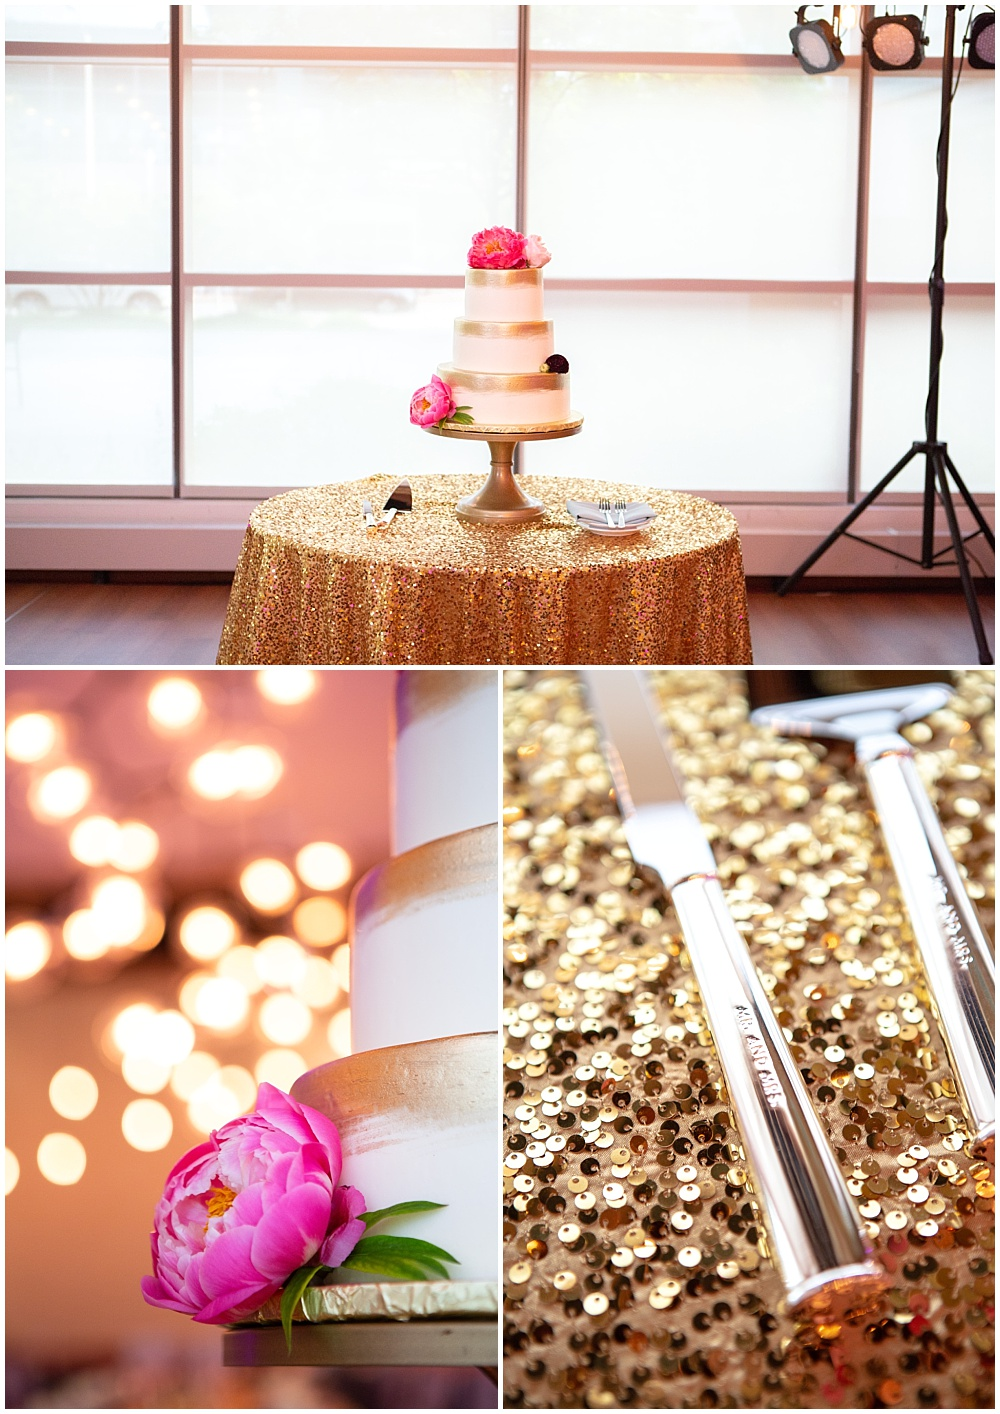 sequin linens, gold wedding, gold cake stand, pink cake flowers, white and gold wedding cake, Colorful, modern wedding at The Alexander Hotel | Conforti Photography and Jessica Dum Wedding Coordination